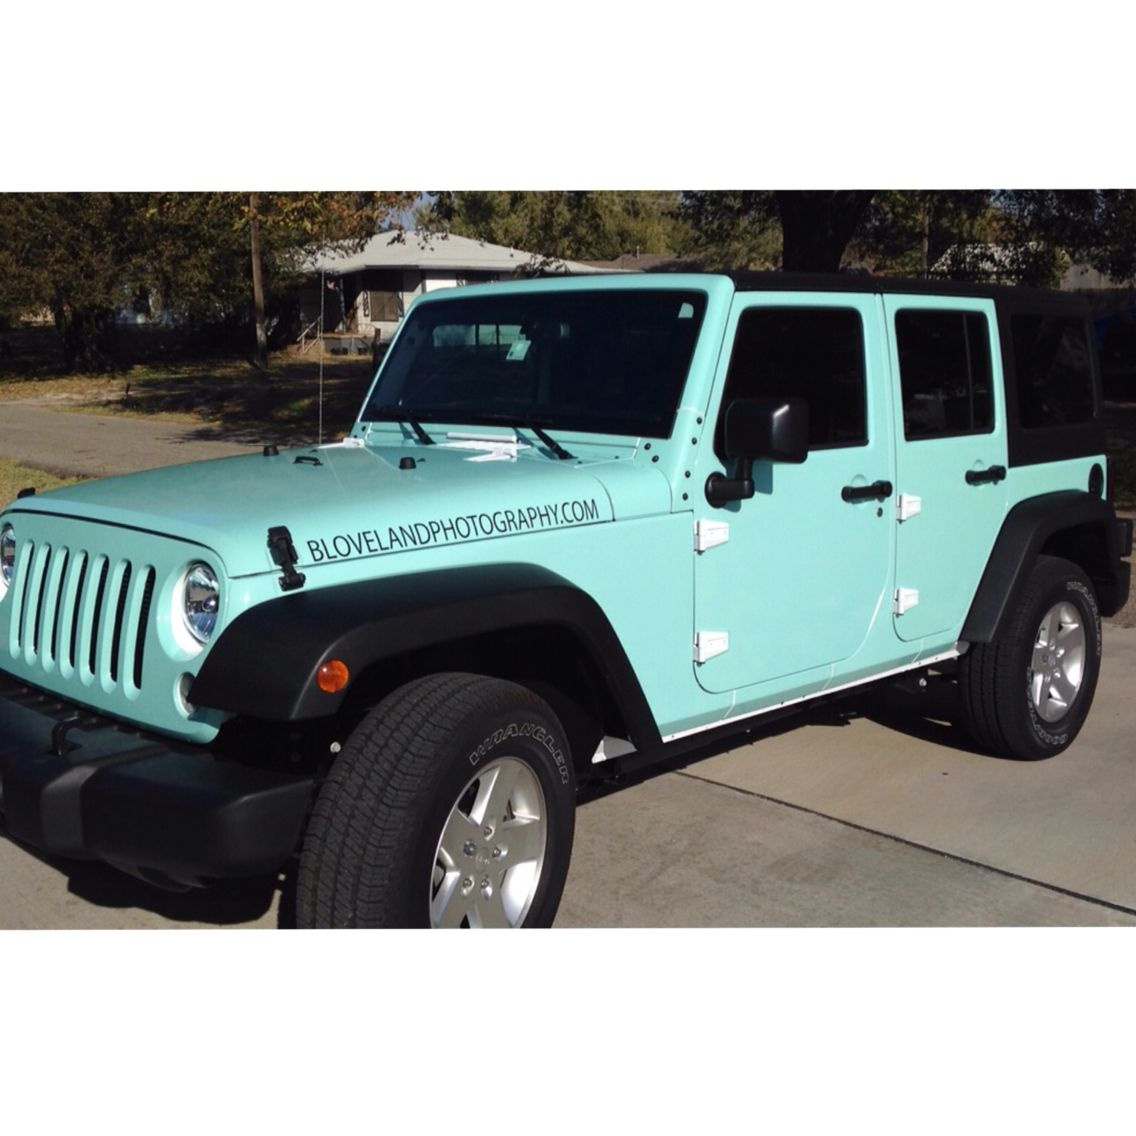 Www Blovelandphotography Com Has A New Turquoise Blue Jeep Cute